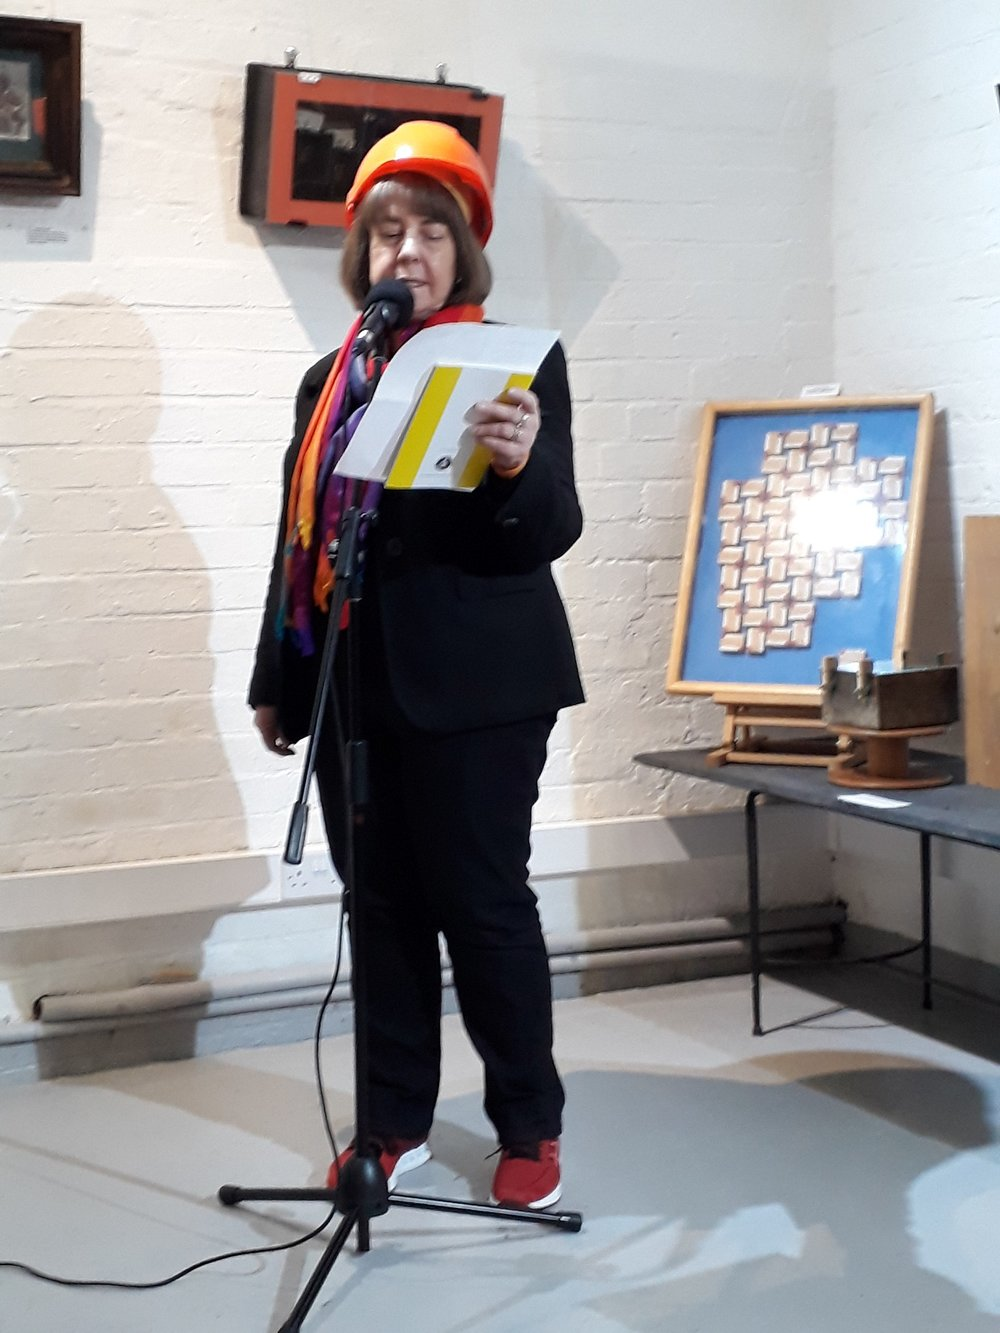 Gloucester Poetry Festival, Stoke-on-Trent, October 2018